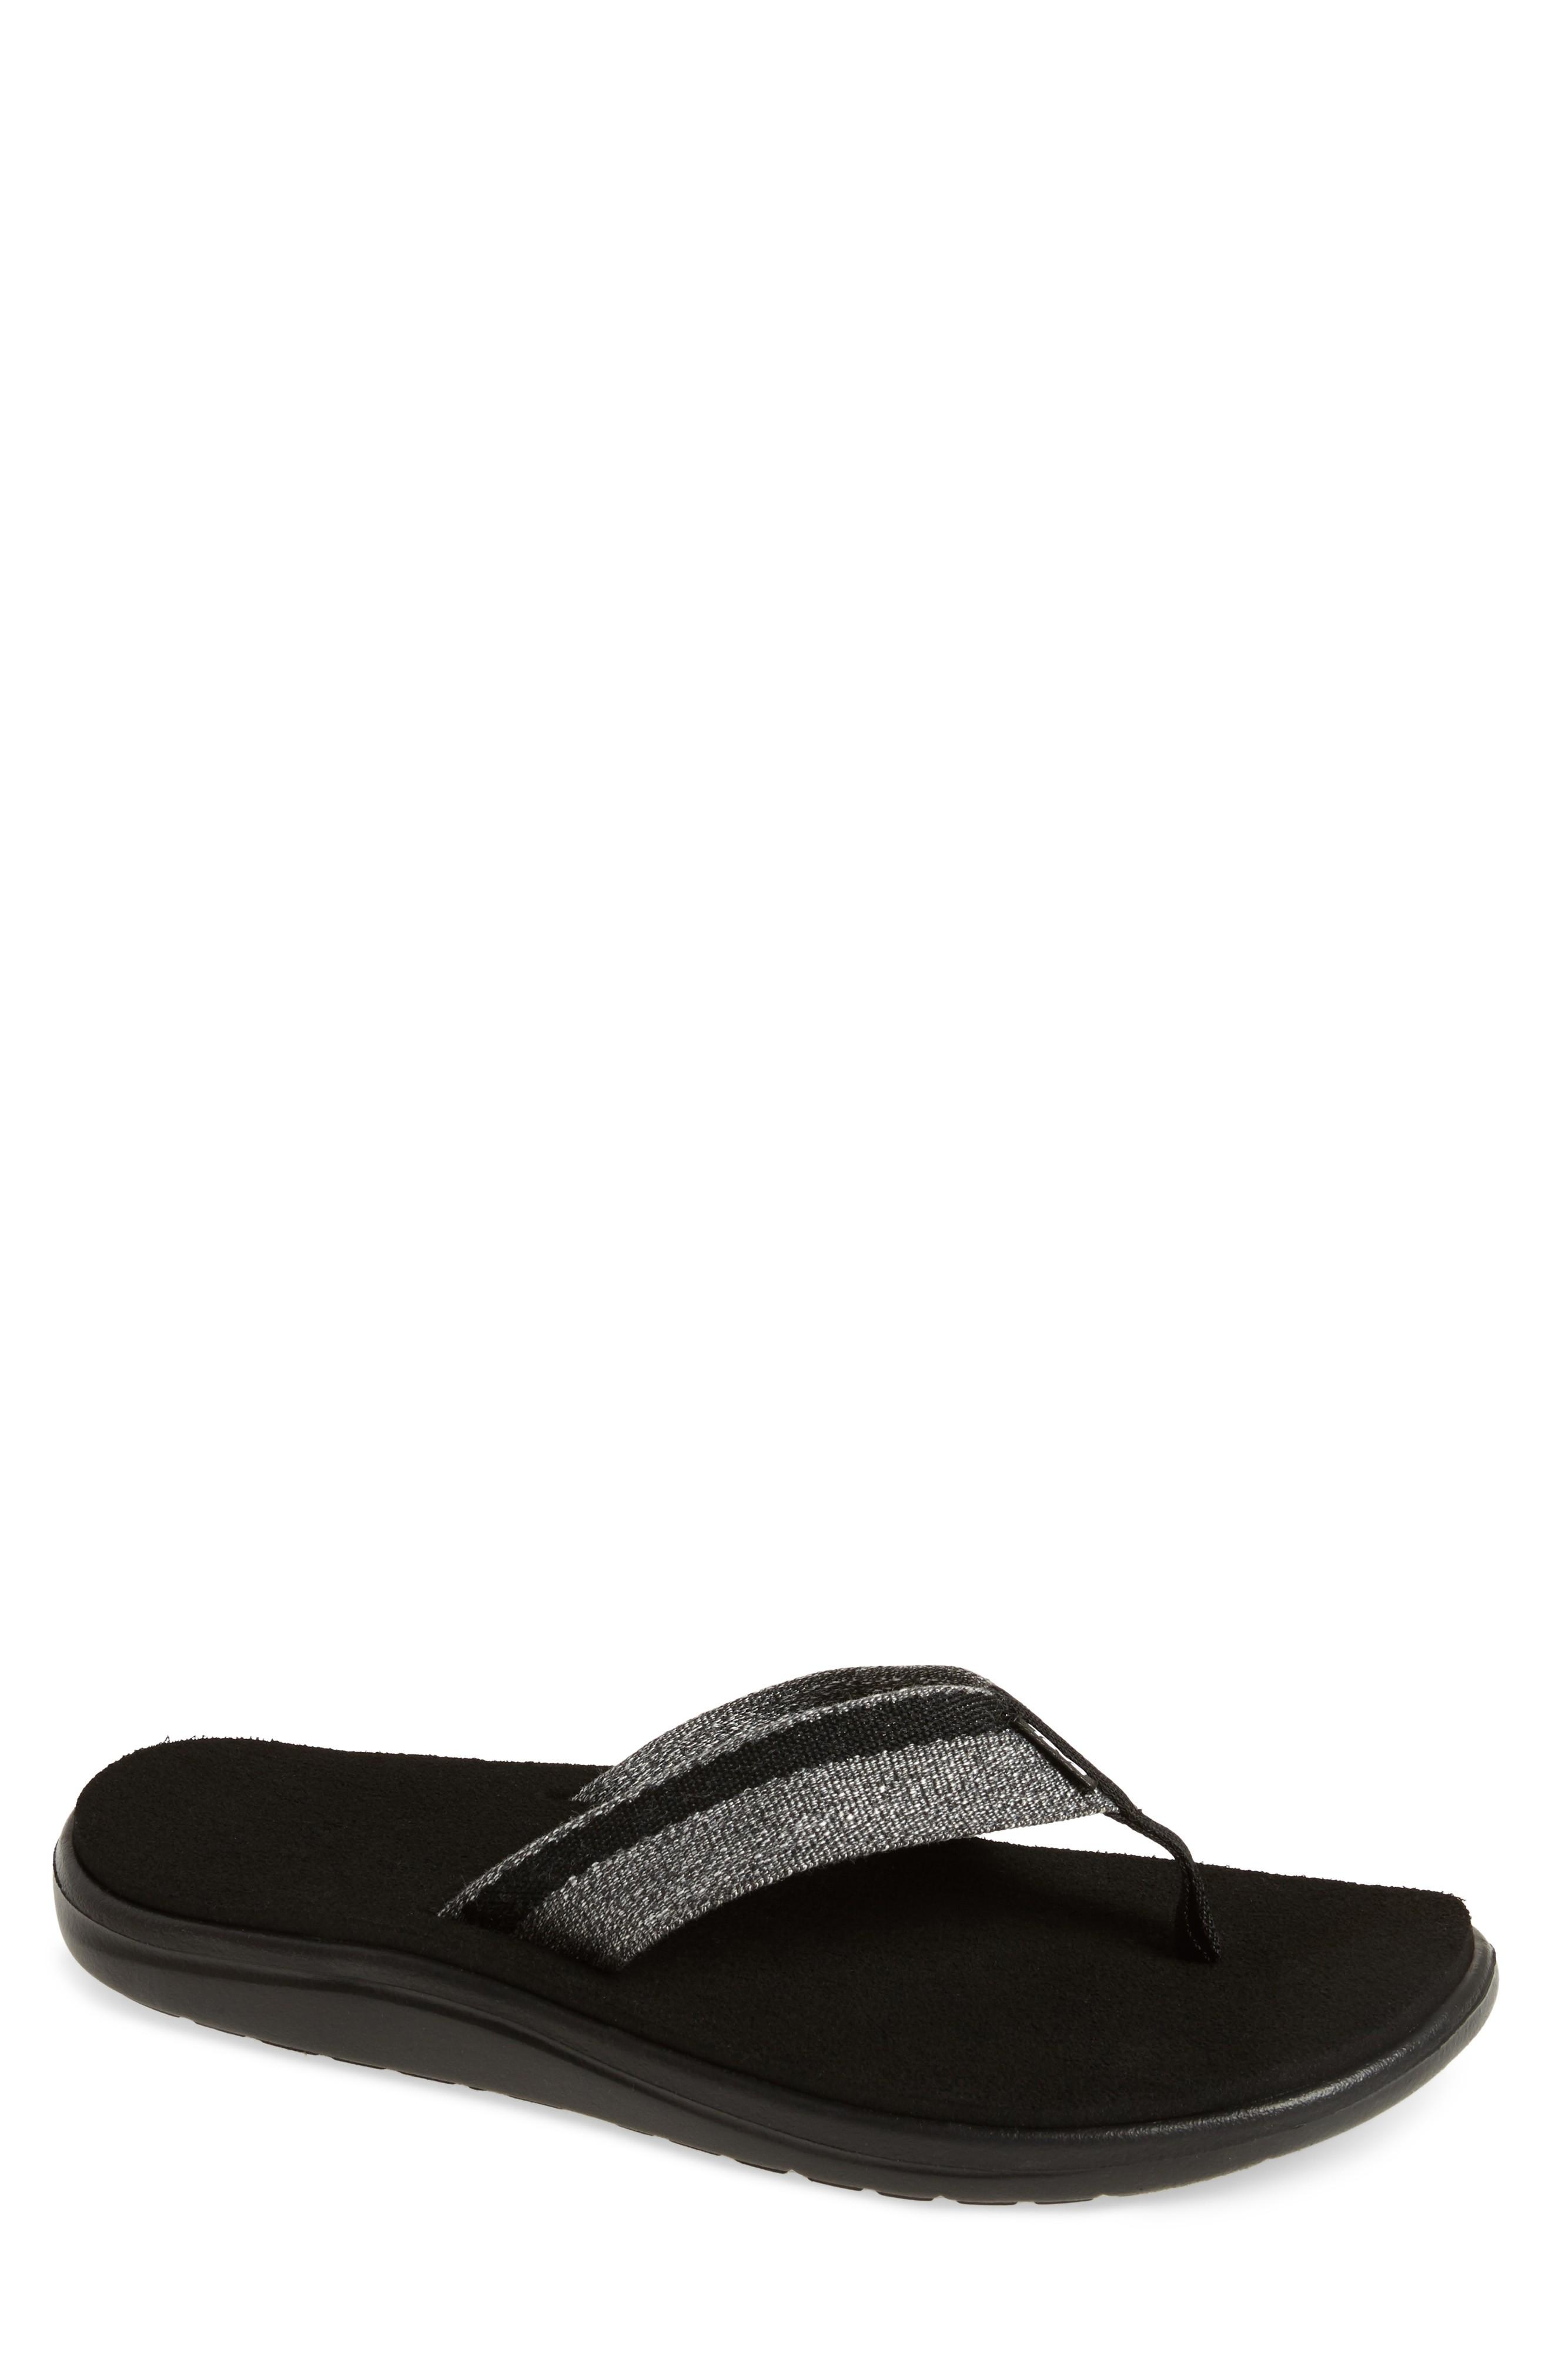 2c84f14ab741 Style Name  Teva Voya Flip Flop (Men). Style Number  5551098 1. Available in  stores.